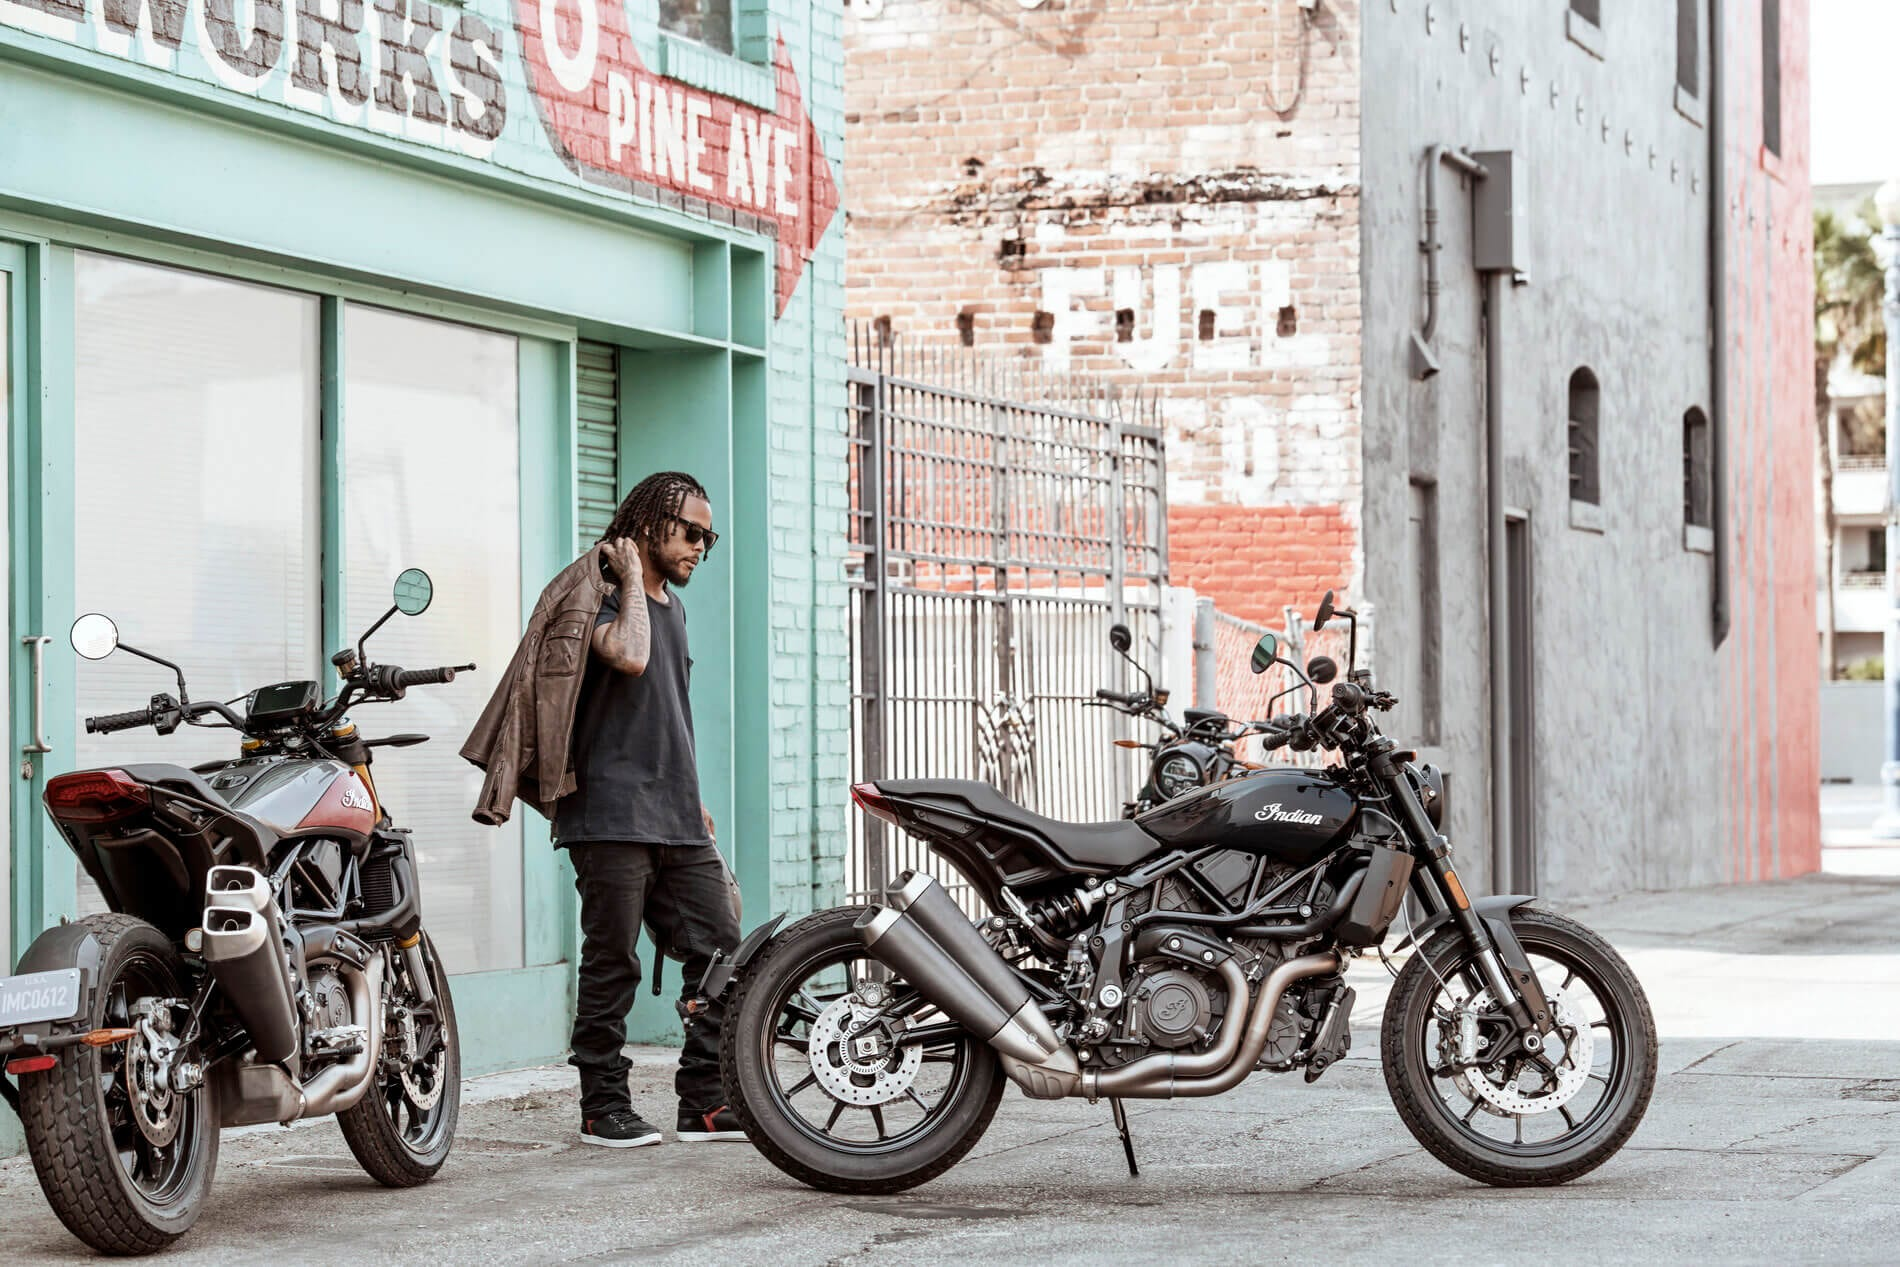 2019-imc-ftr-1200-thunder-black-lifestyle-01 (1)